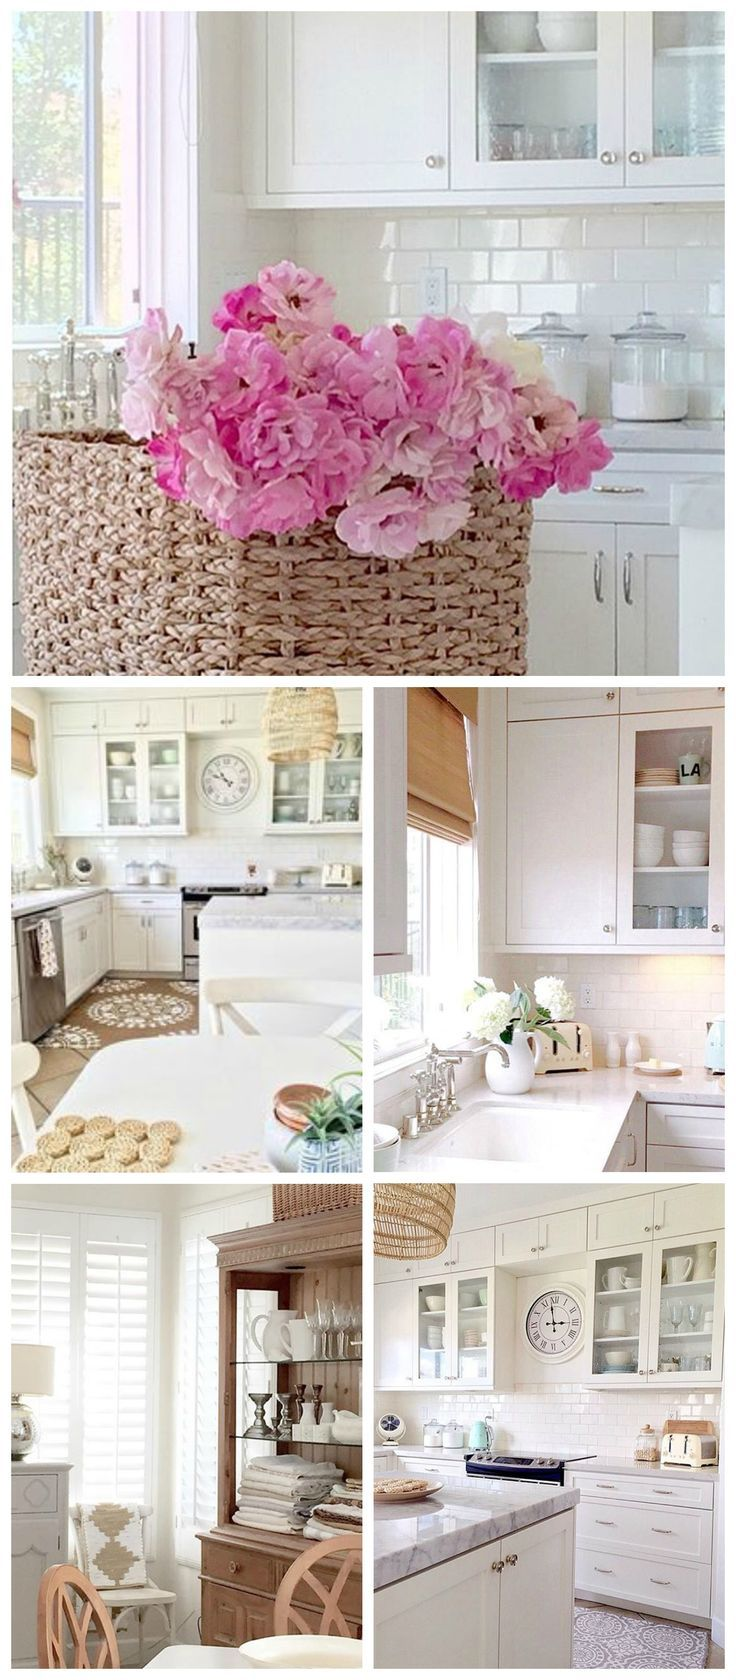 Farm Kitchen Decorating Ideas 402 best fox hollow cottage images on pinterest | cottage style